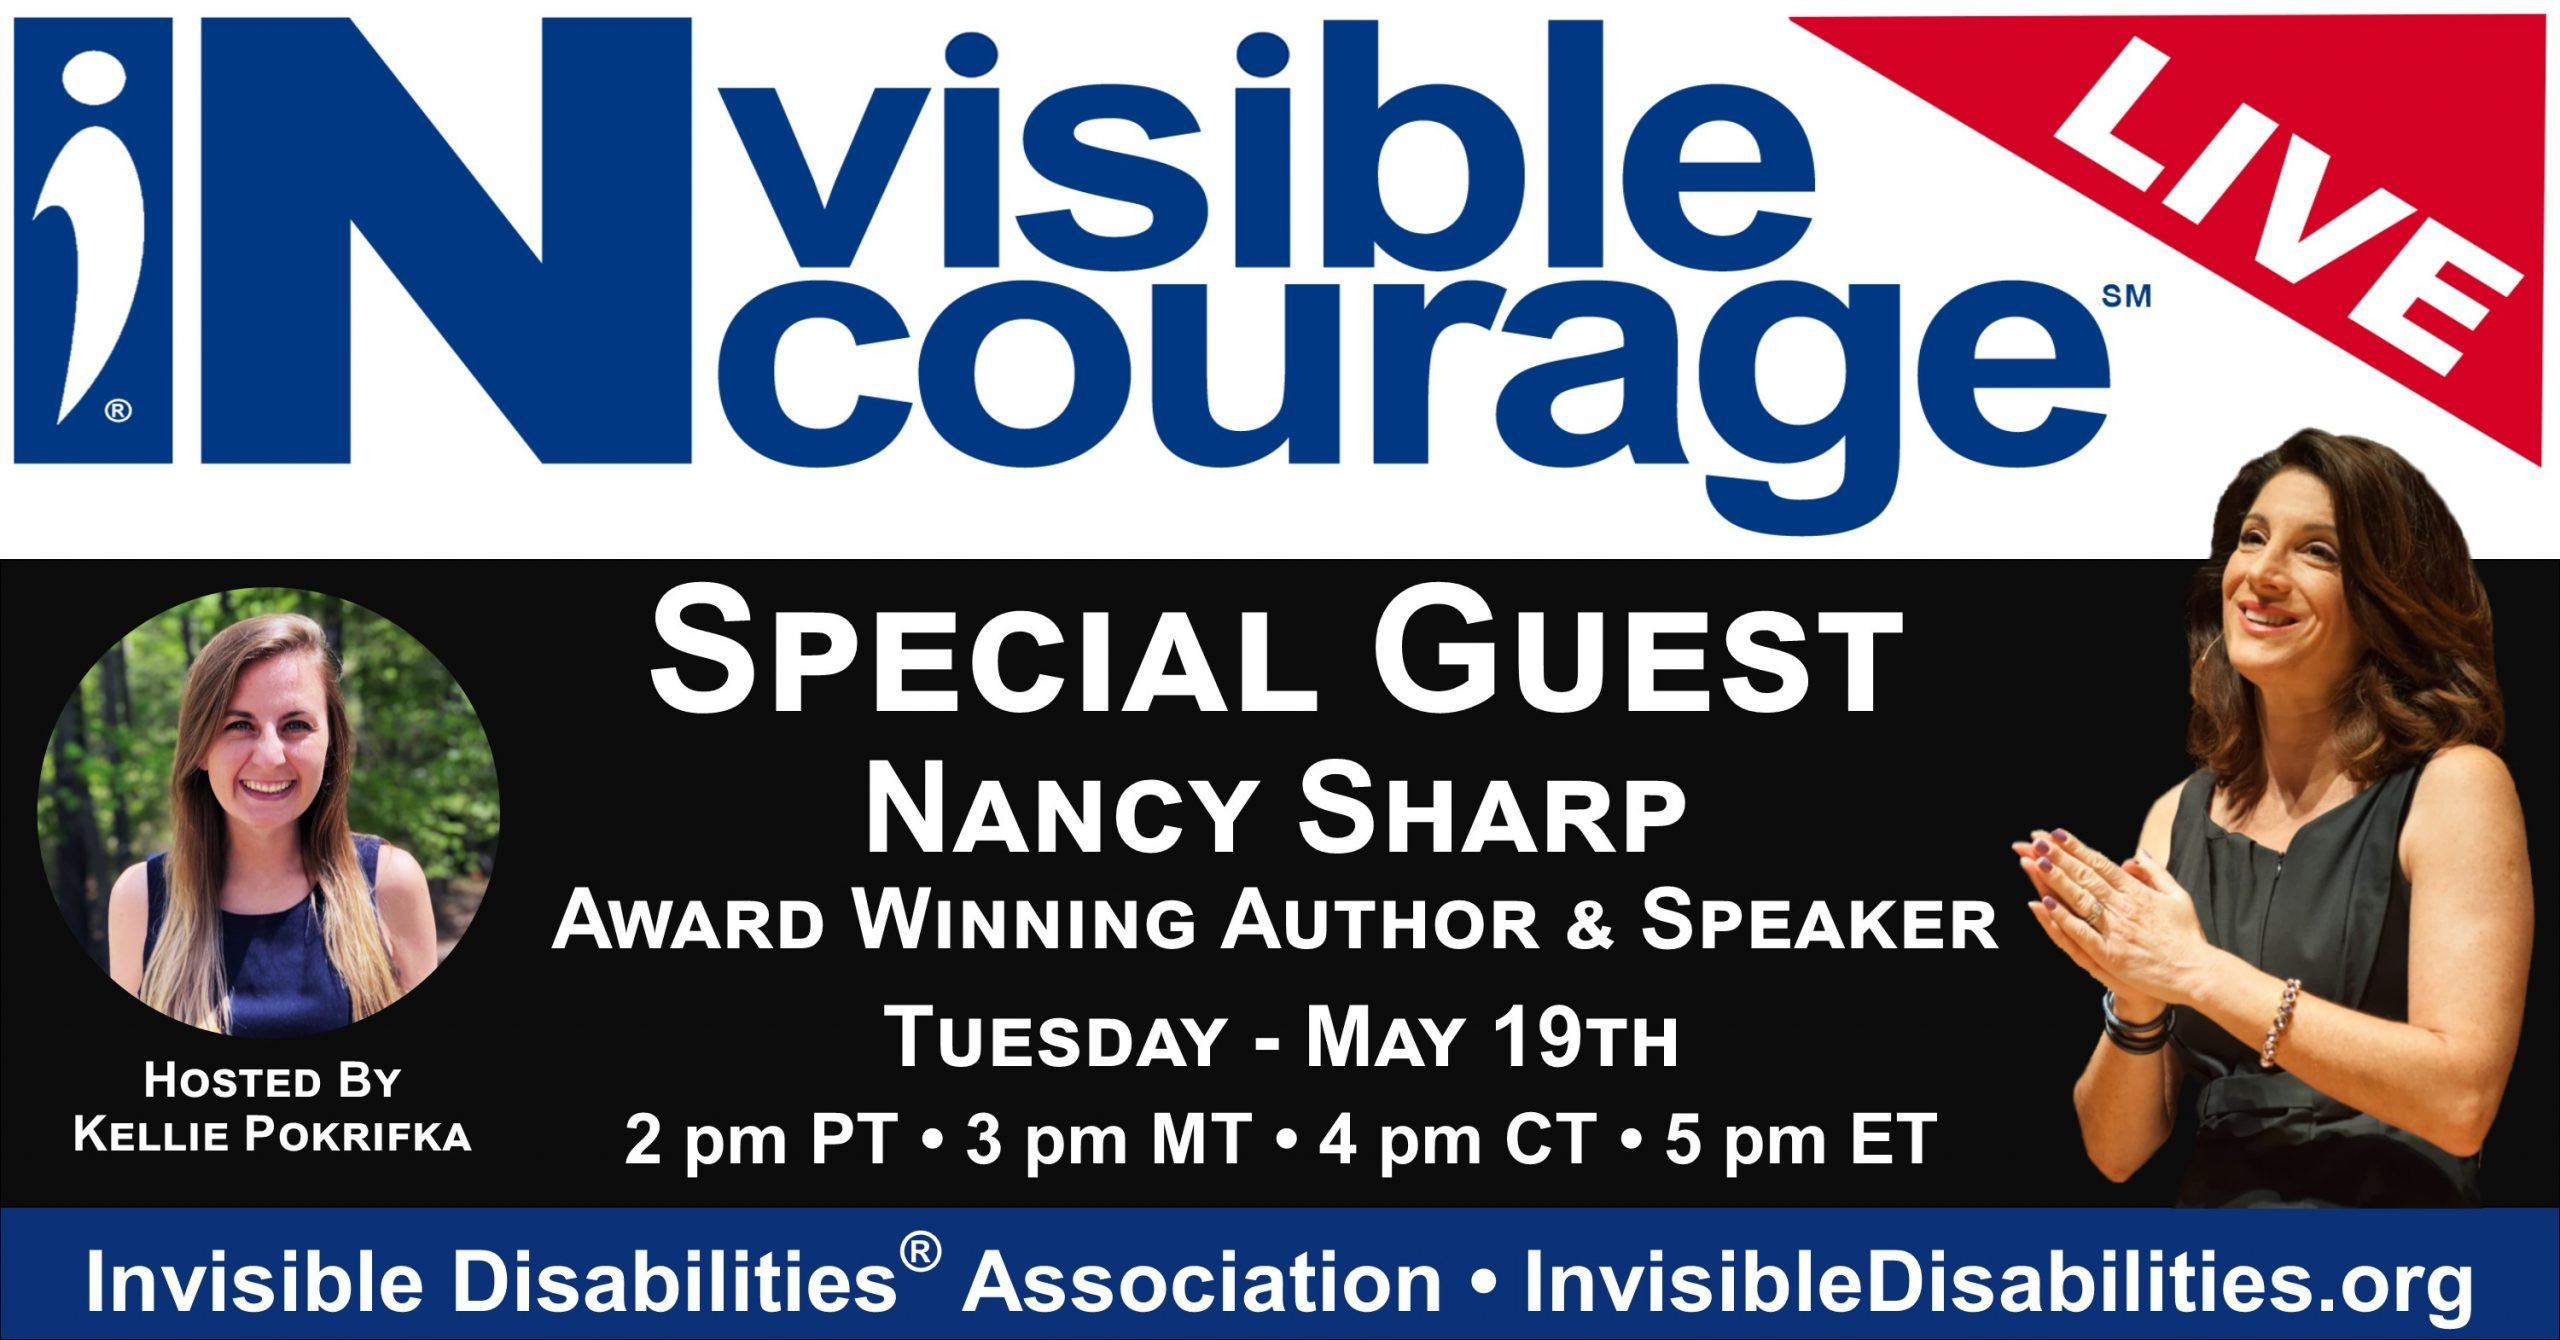 InVisible Encourage Live with Nancy Sharp, Author, Speaker - Invisible Disabilities Association